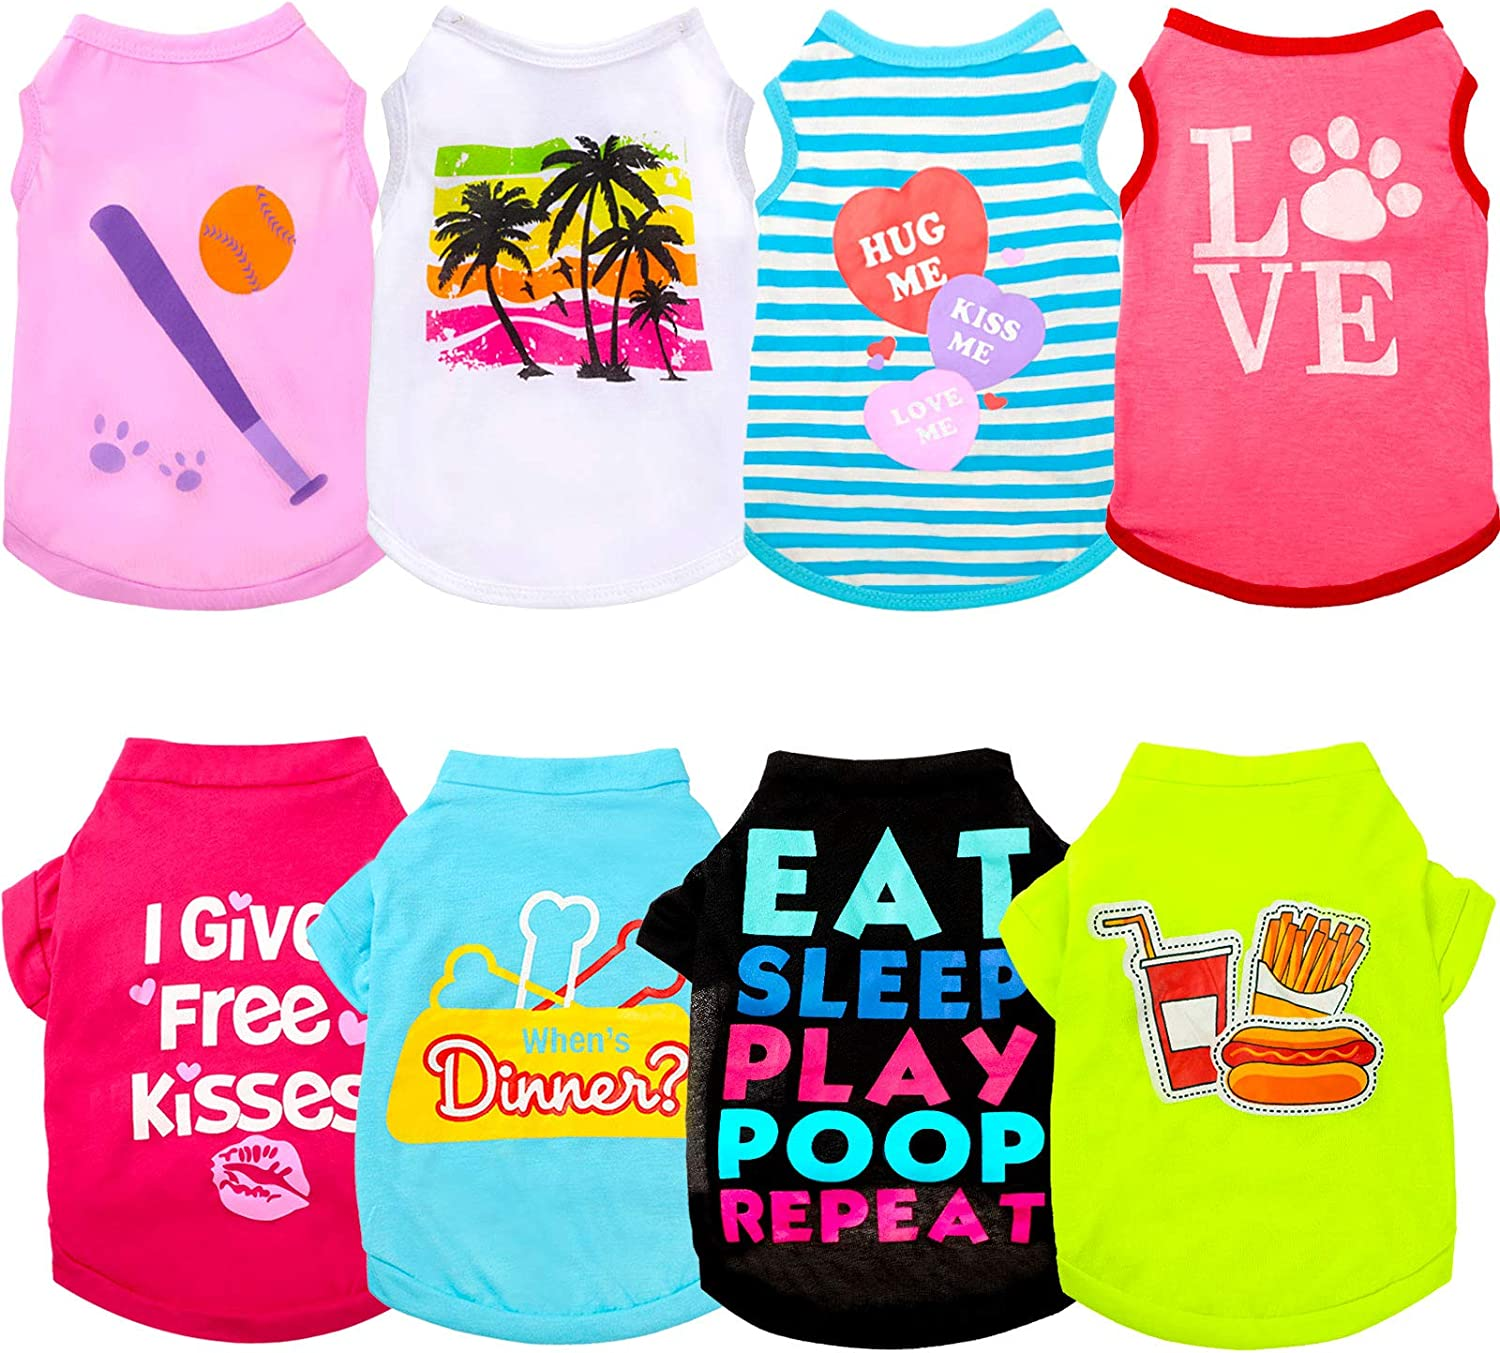 8 Pieces Printed Puppy Rare Dog Pu Breathable outlet Shirts Soft Apparel